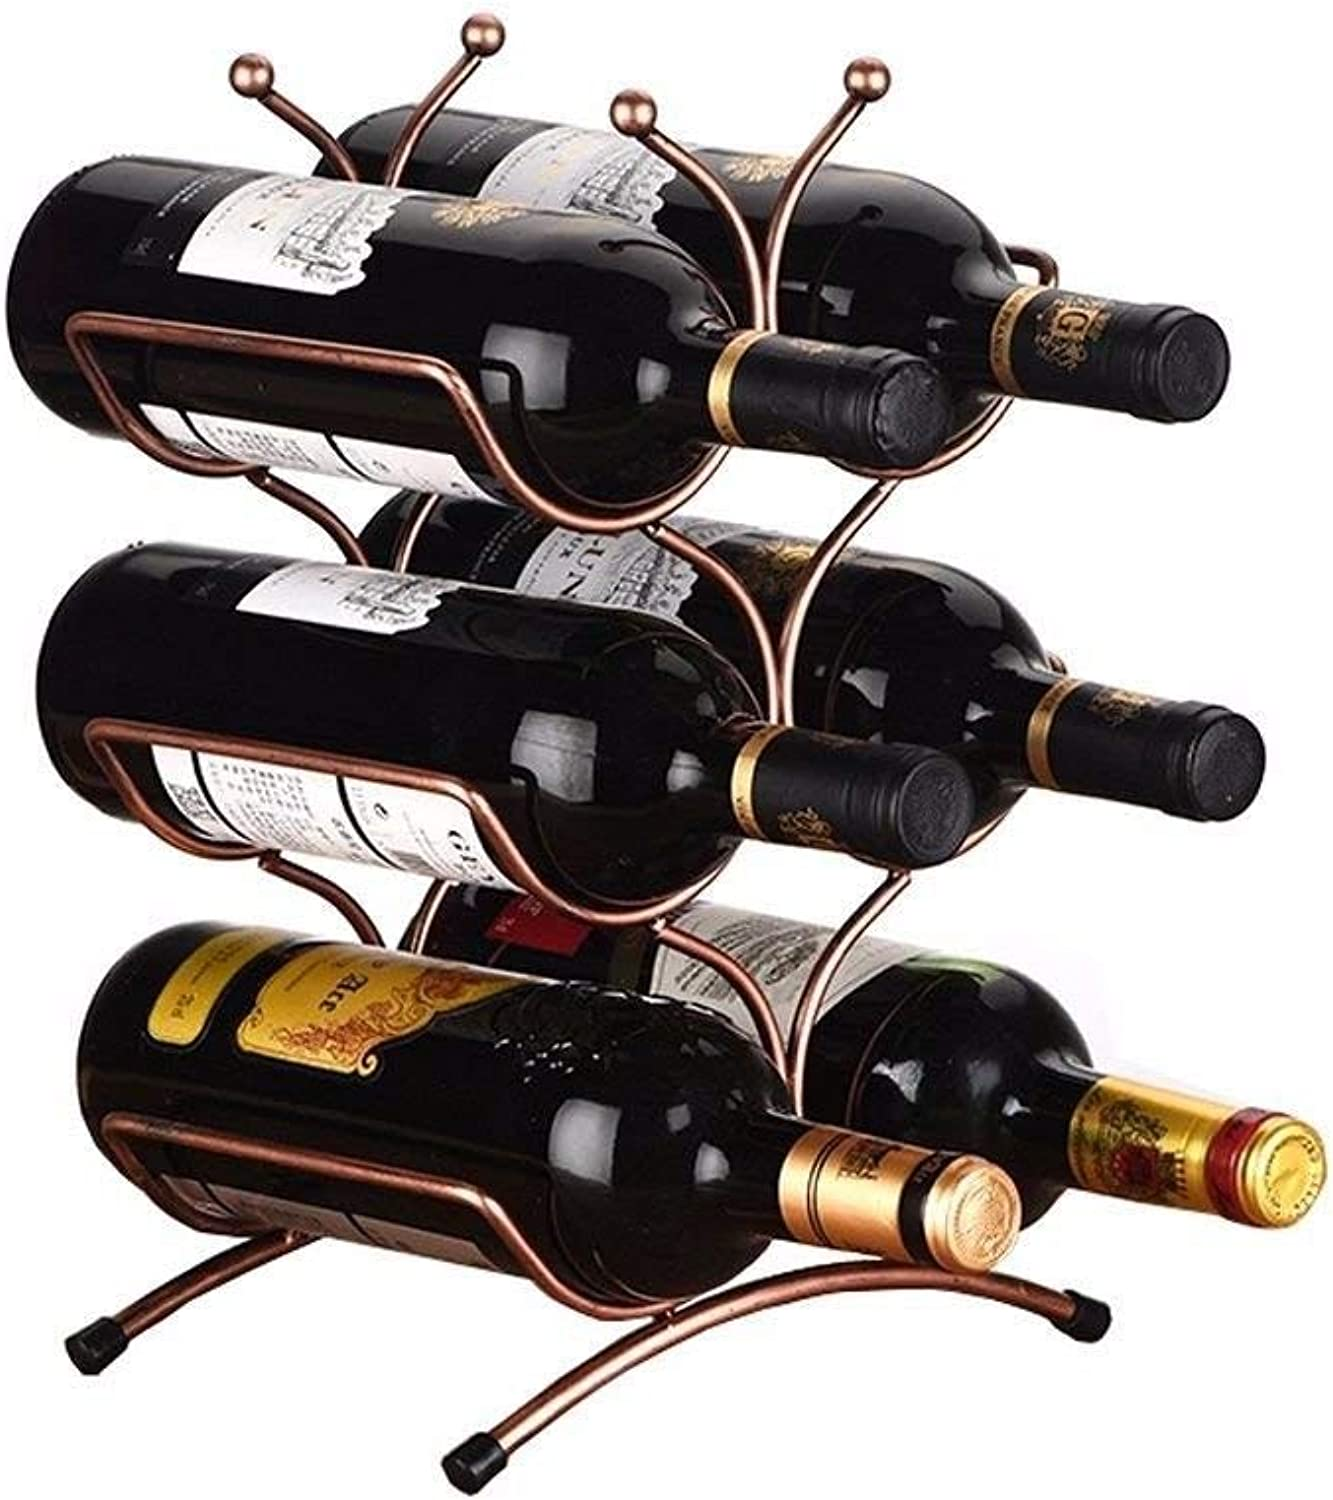 Red Wine Shelf This bottle rack is the perfect accessory for storing bottles - Stackable bottle holder ideal for wine bottles6 bottles bees shape bottle rack metal tabletop freestanding storage rack b